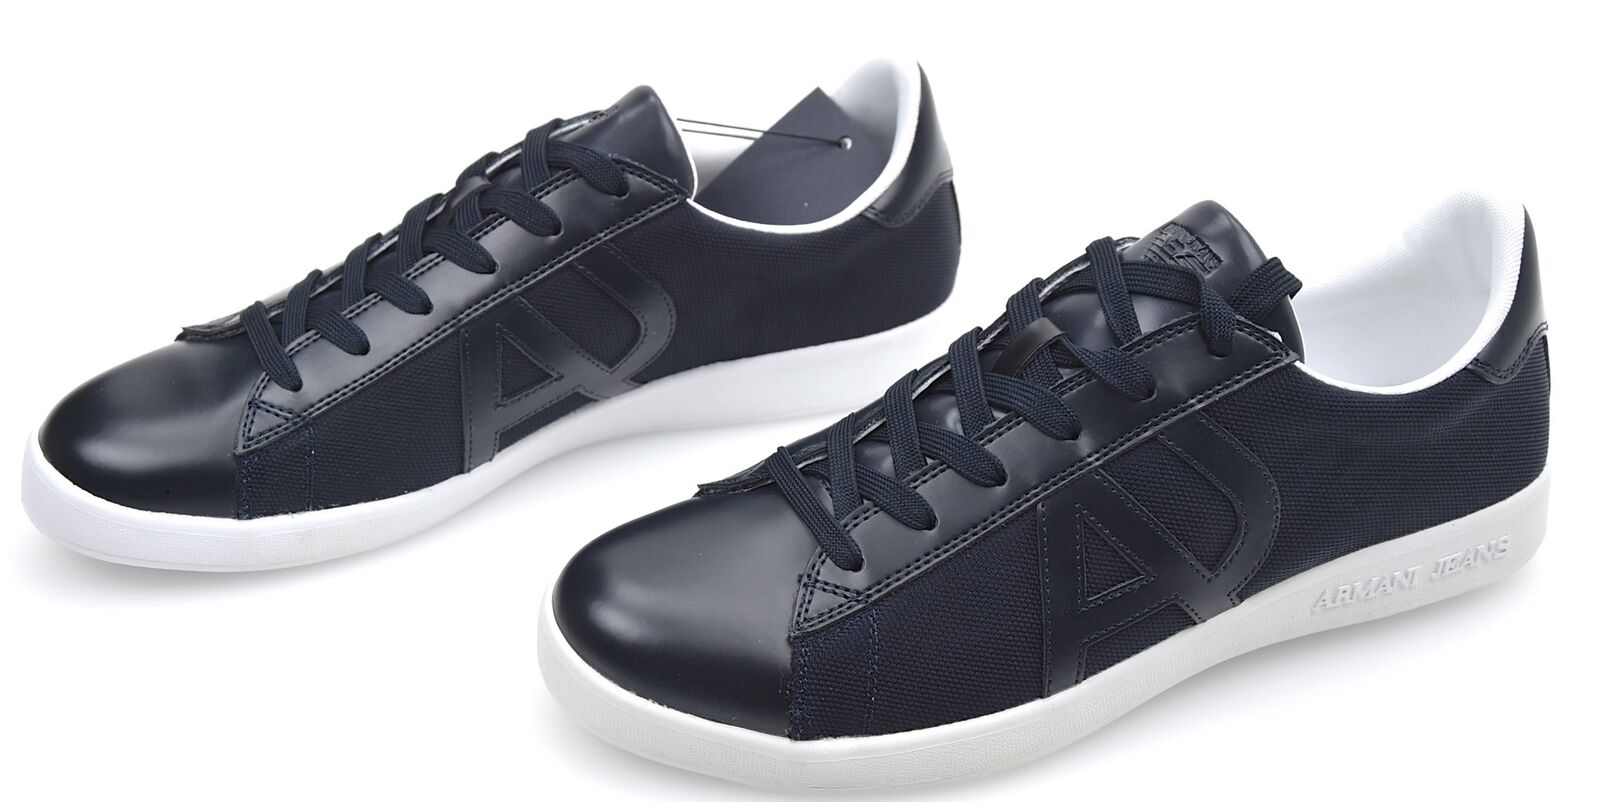 ARMANI JEANS MAN SNEAKER SHOES CASUAL FREE TIME CODE 935565 CC503